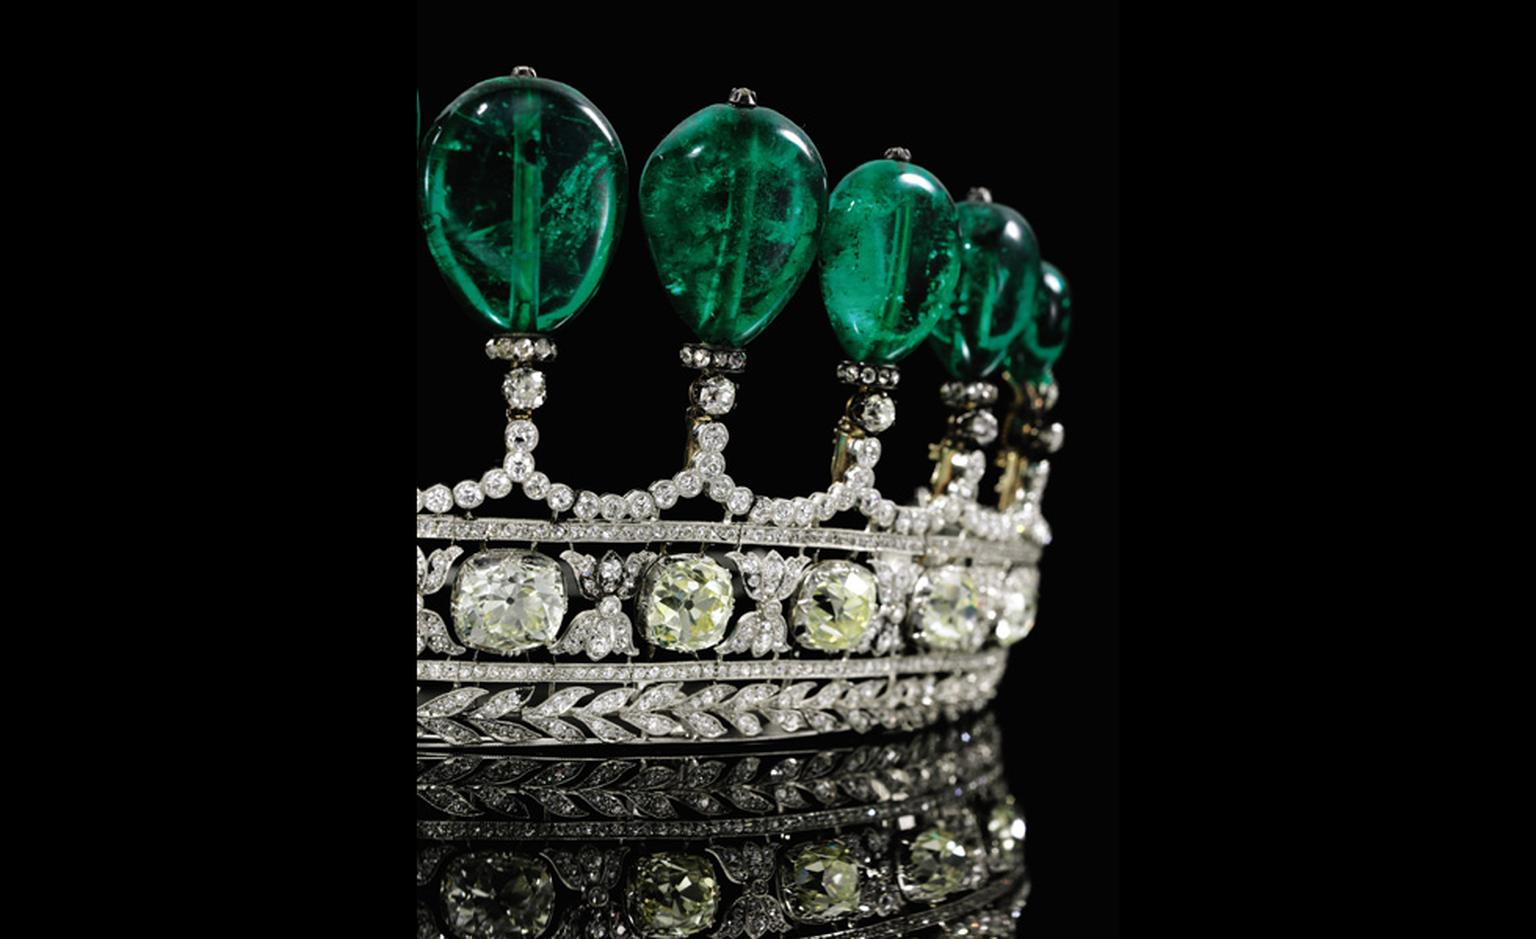 EEmerald tiara circa 1900 coming up for sale at Sotheby's Geneva May 17 Auction, from the collection of Princess Katharina Henckel von Donnersmarck and one of the most important tiaras to come to auction in 30 years. The emeralds are Columbian a...